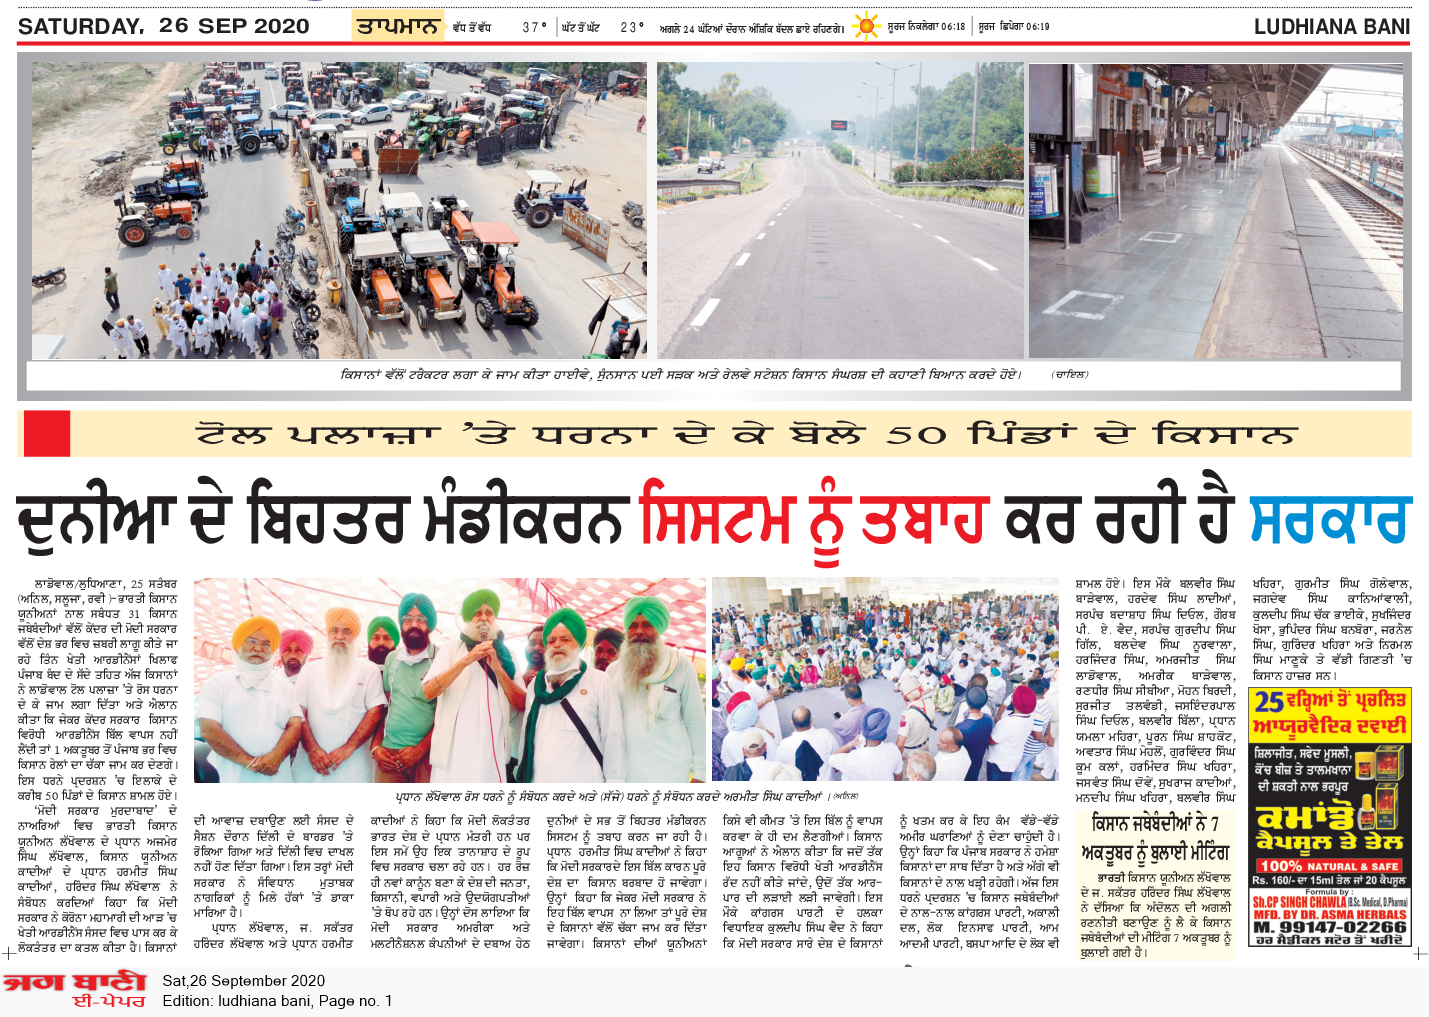 Ludhiana Bani 9/26/2020 12:00:00 AM